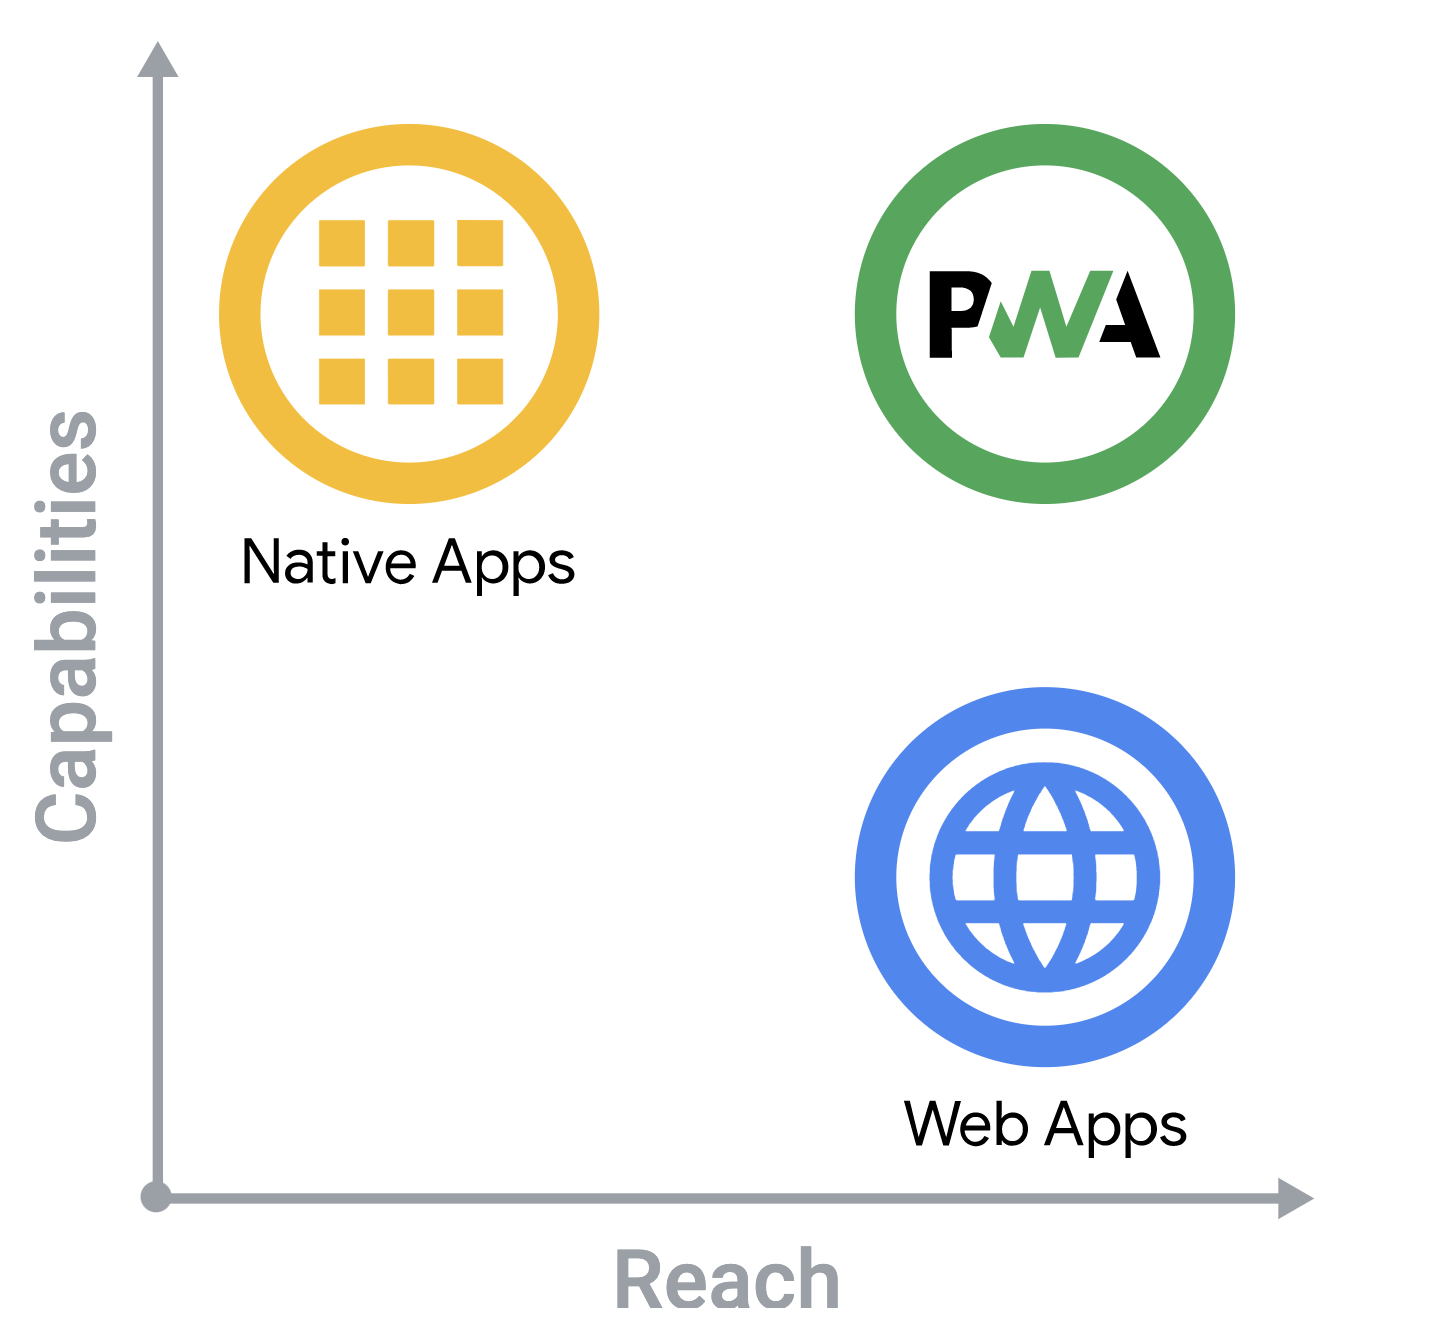 The growth of progressive web apps versus native apps